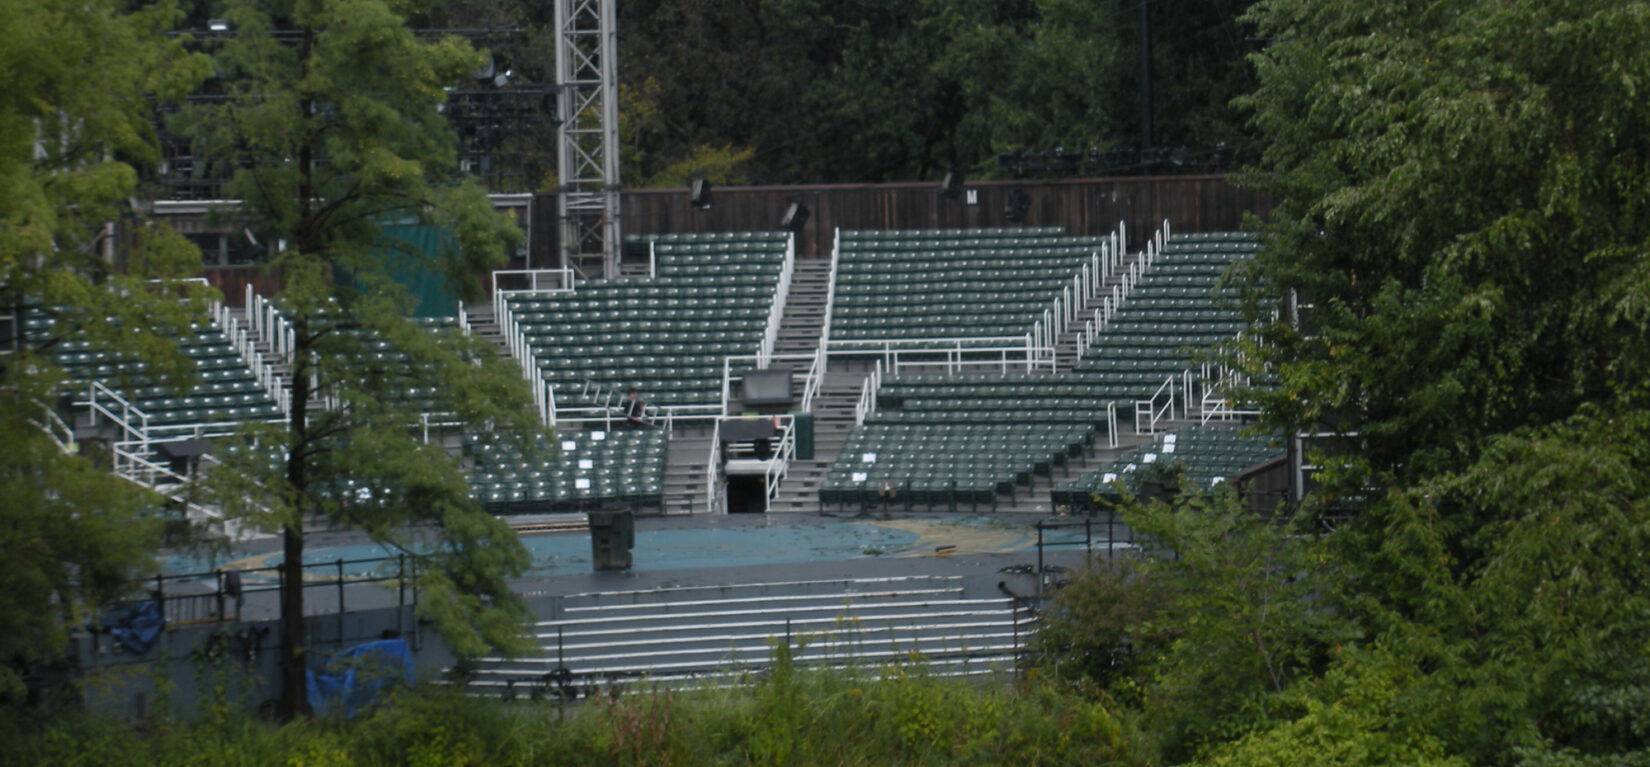 A view of the seats in the Delacorte Theater